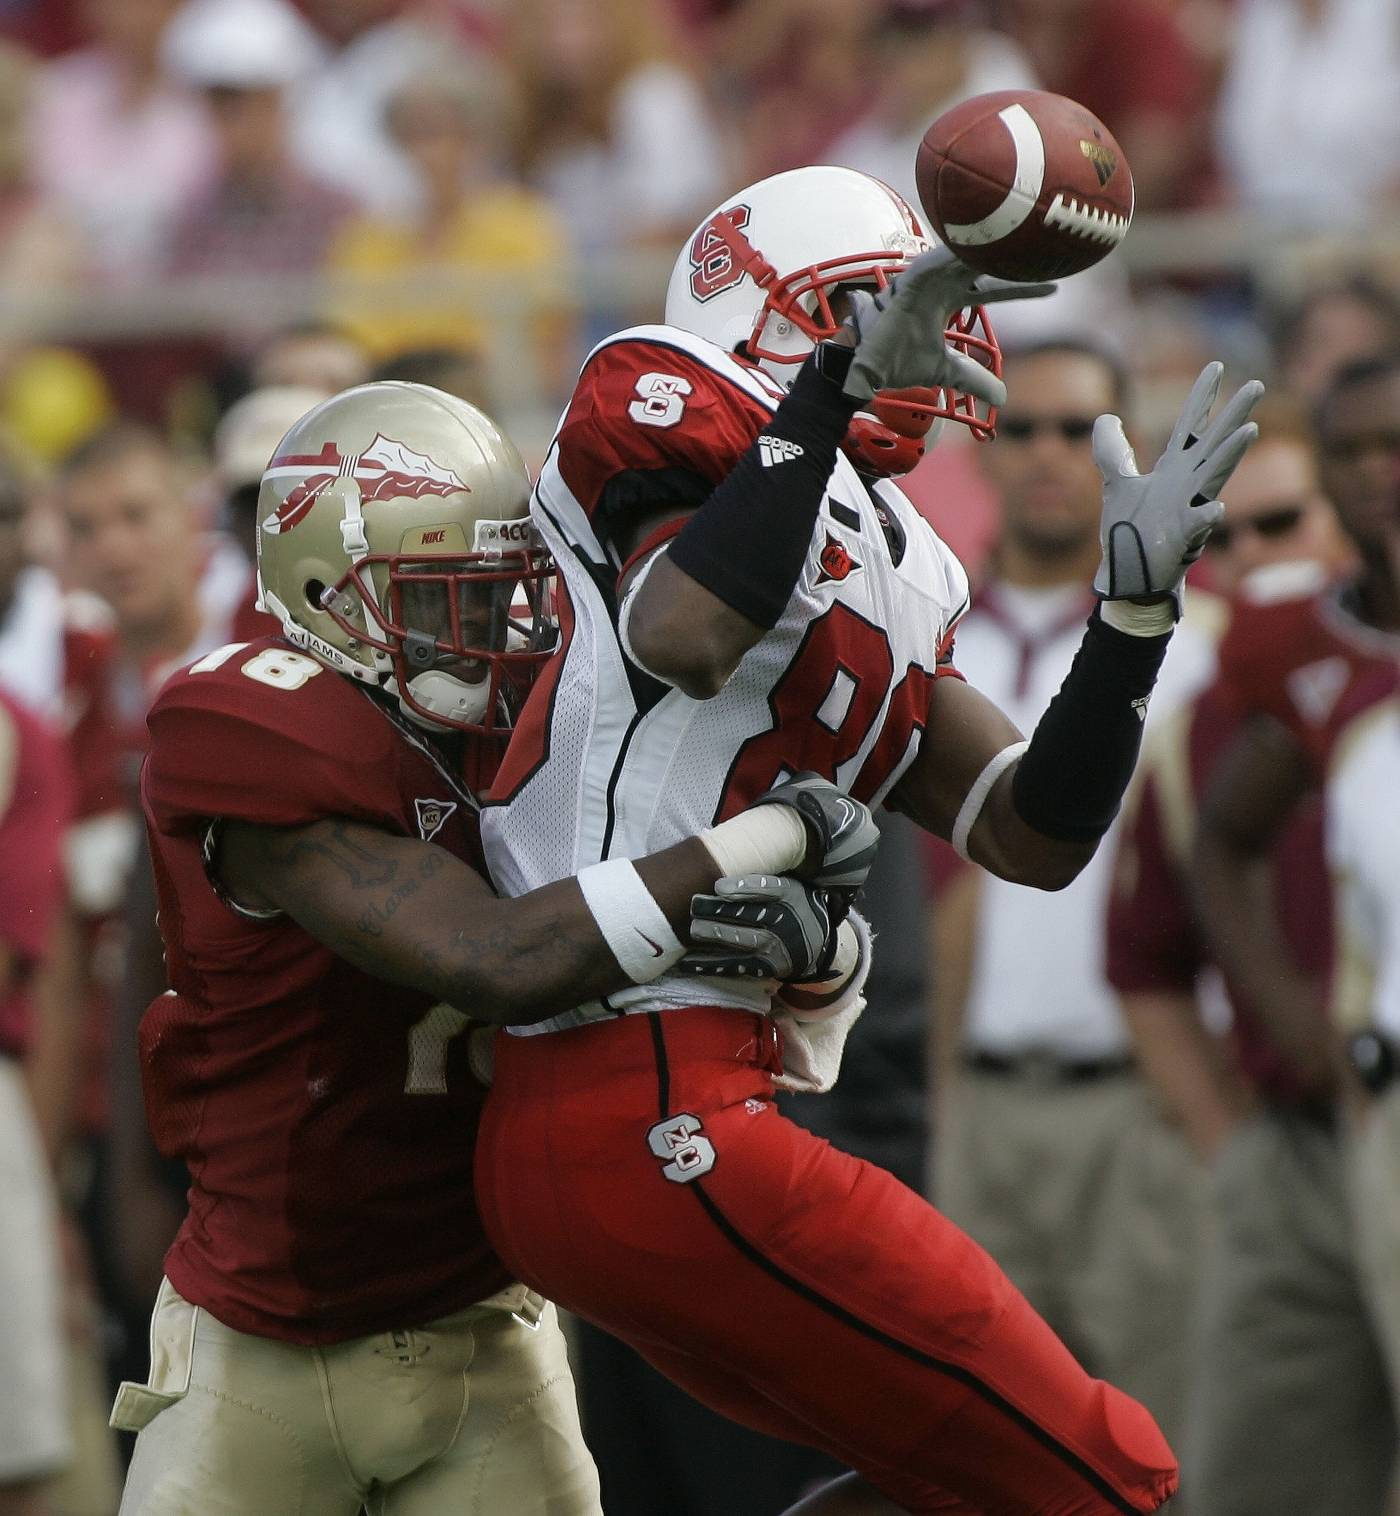 Florida State defensive back J. R. Bryant, left, is called for pass interference as he attempts to defend North Carolina State receiver Donald Bowens. (AP Photo/Phil Coale)